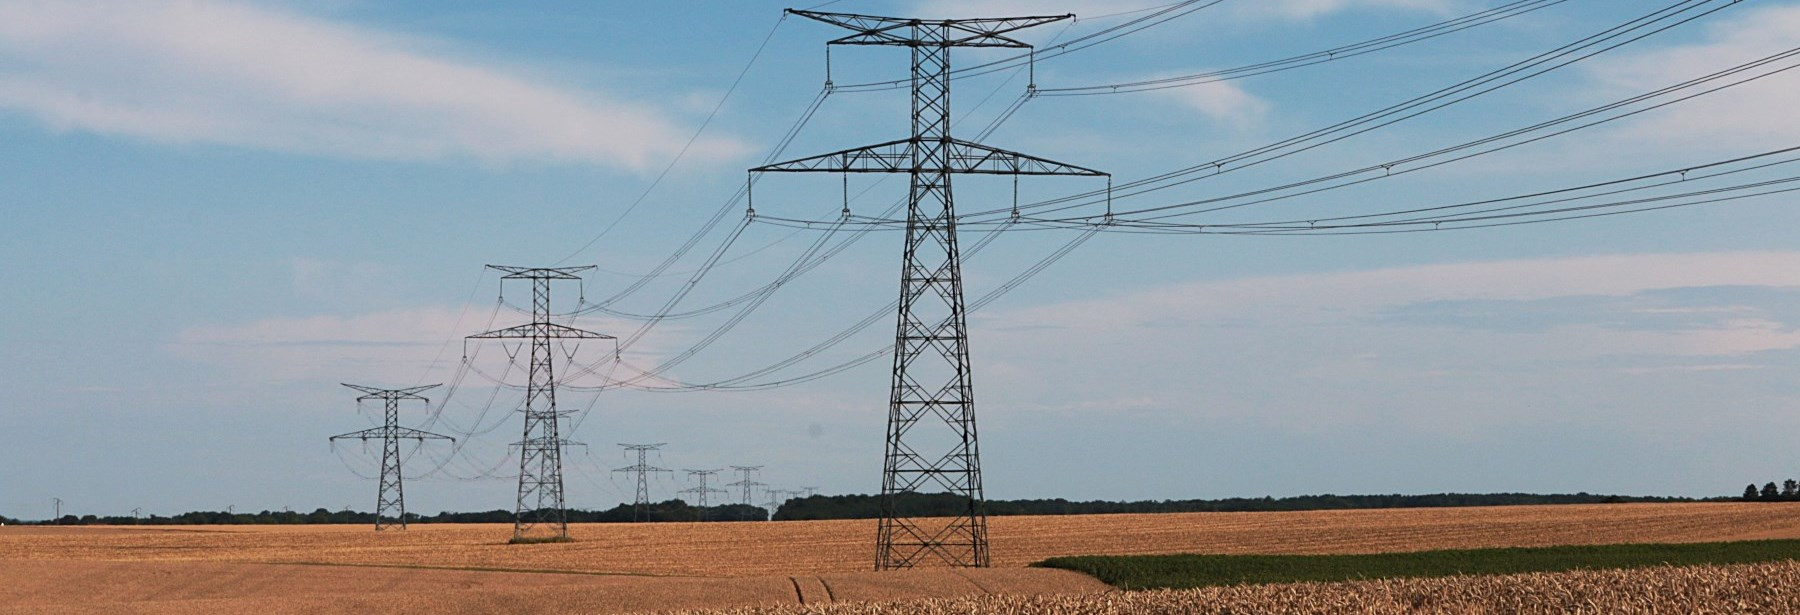 hydro towers in a field against a blue sky